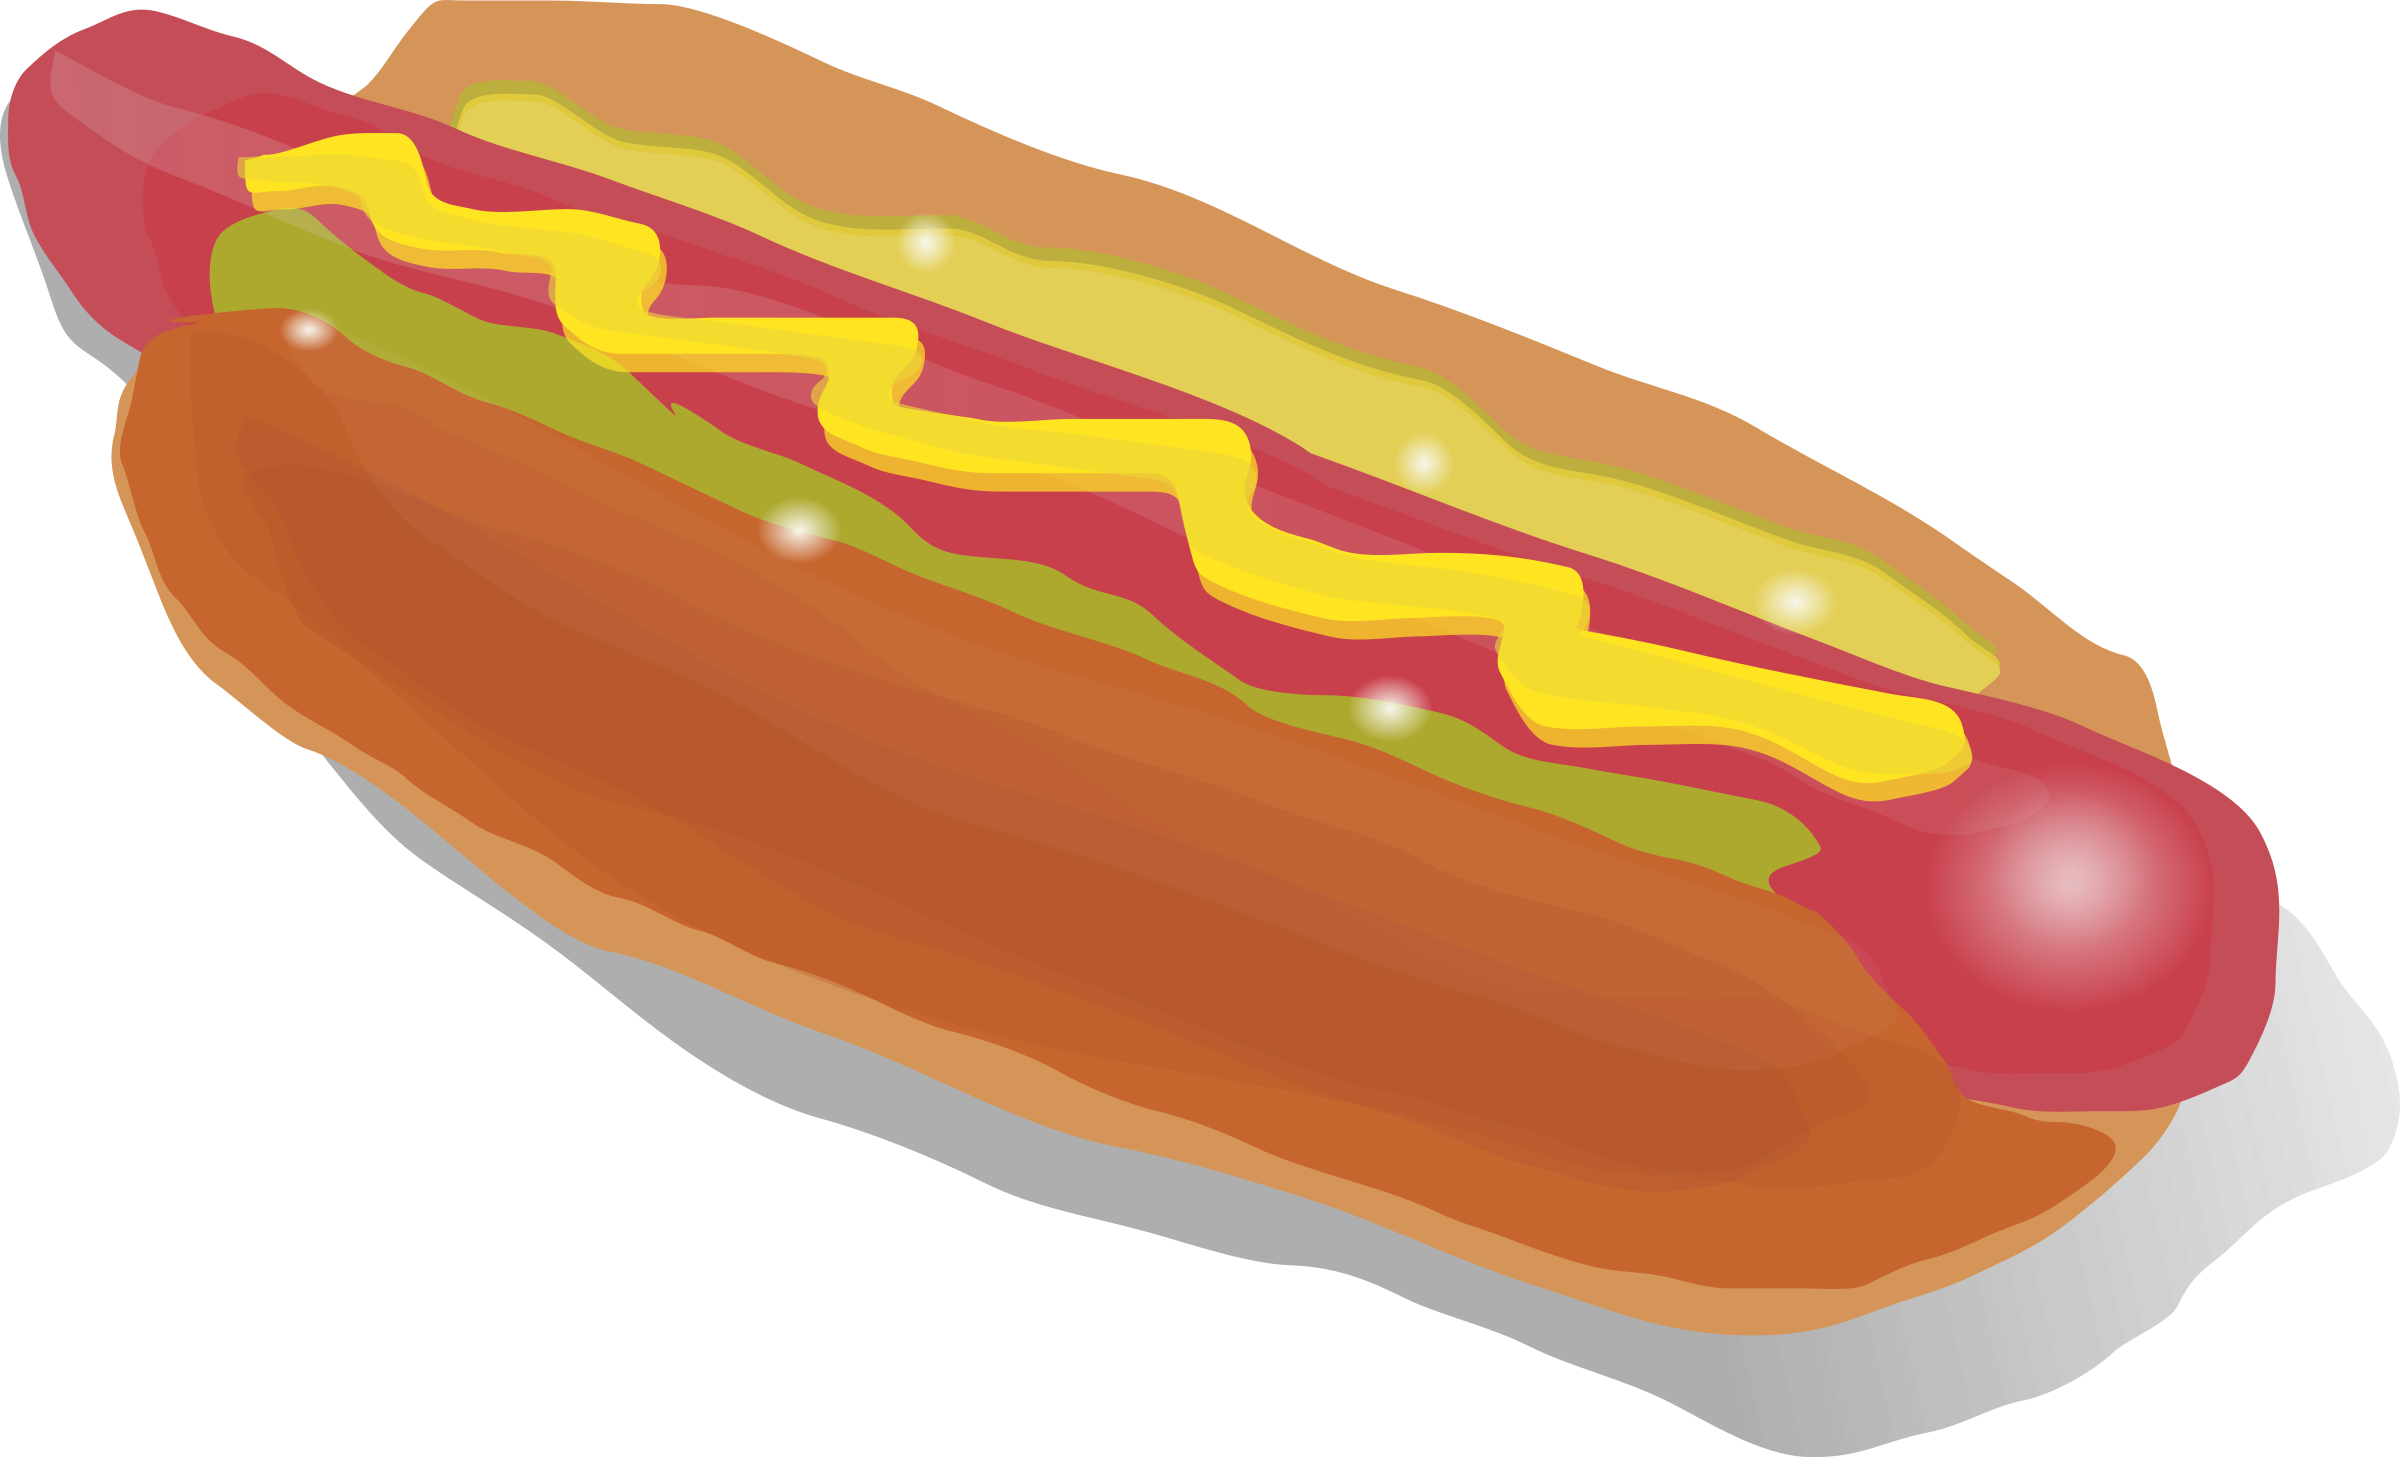 Clipart hot dog graphic library stock Hot Dog PNG Transparent Images (63+) graphic library stock